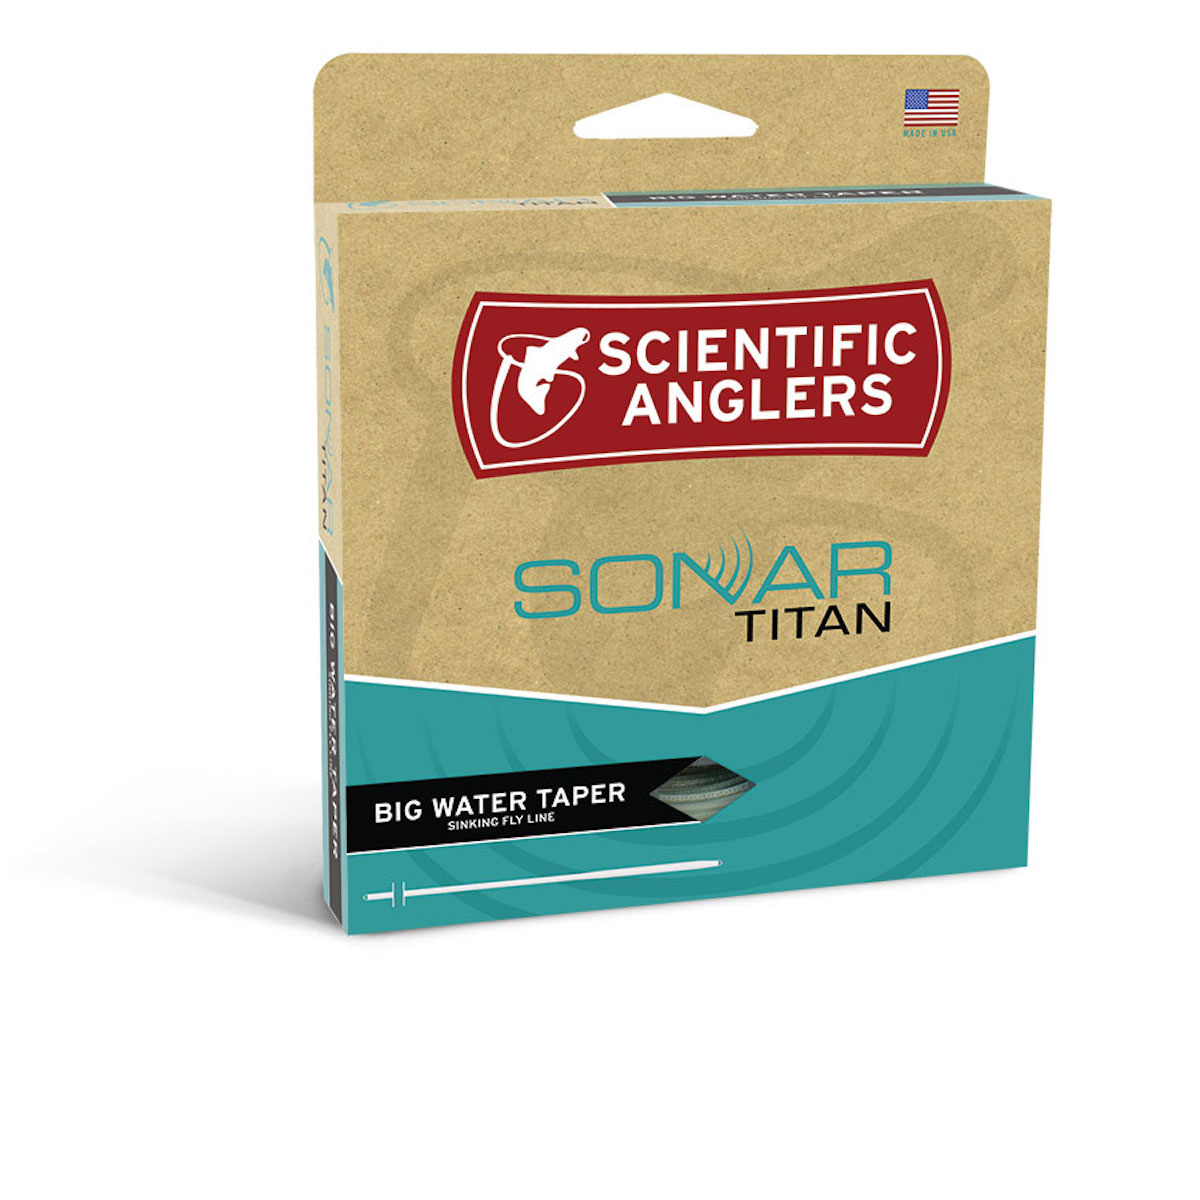 Scientific Anglers Sonar Titan BWT Big Water Taper Fly Line